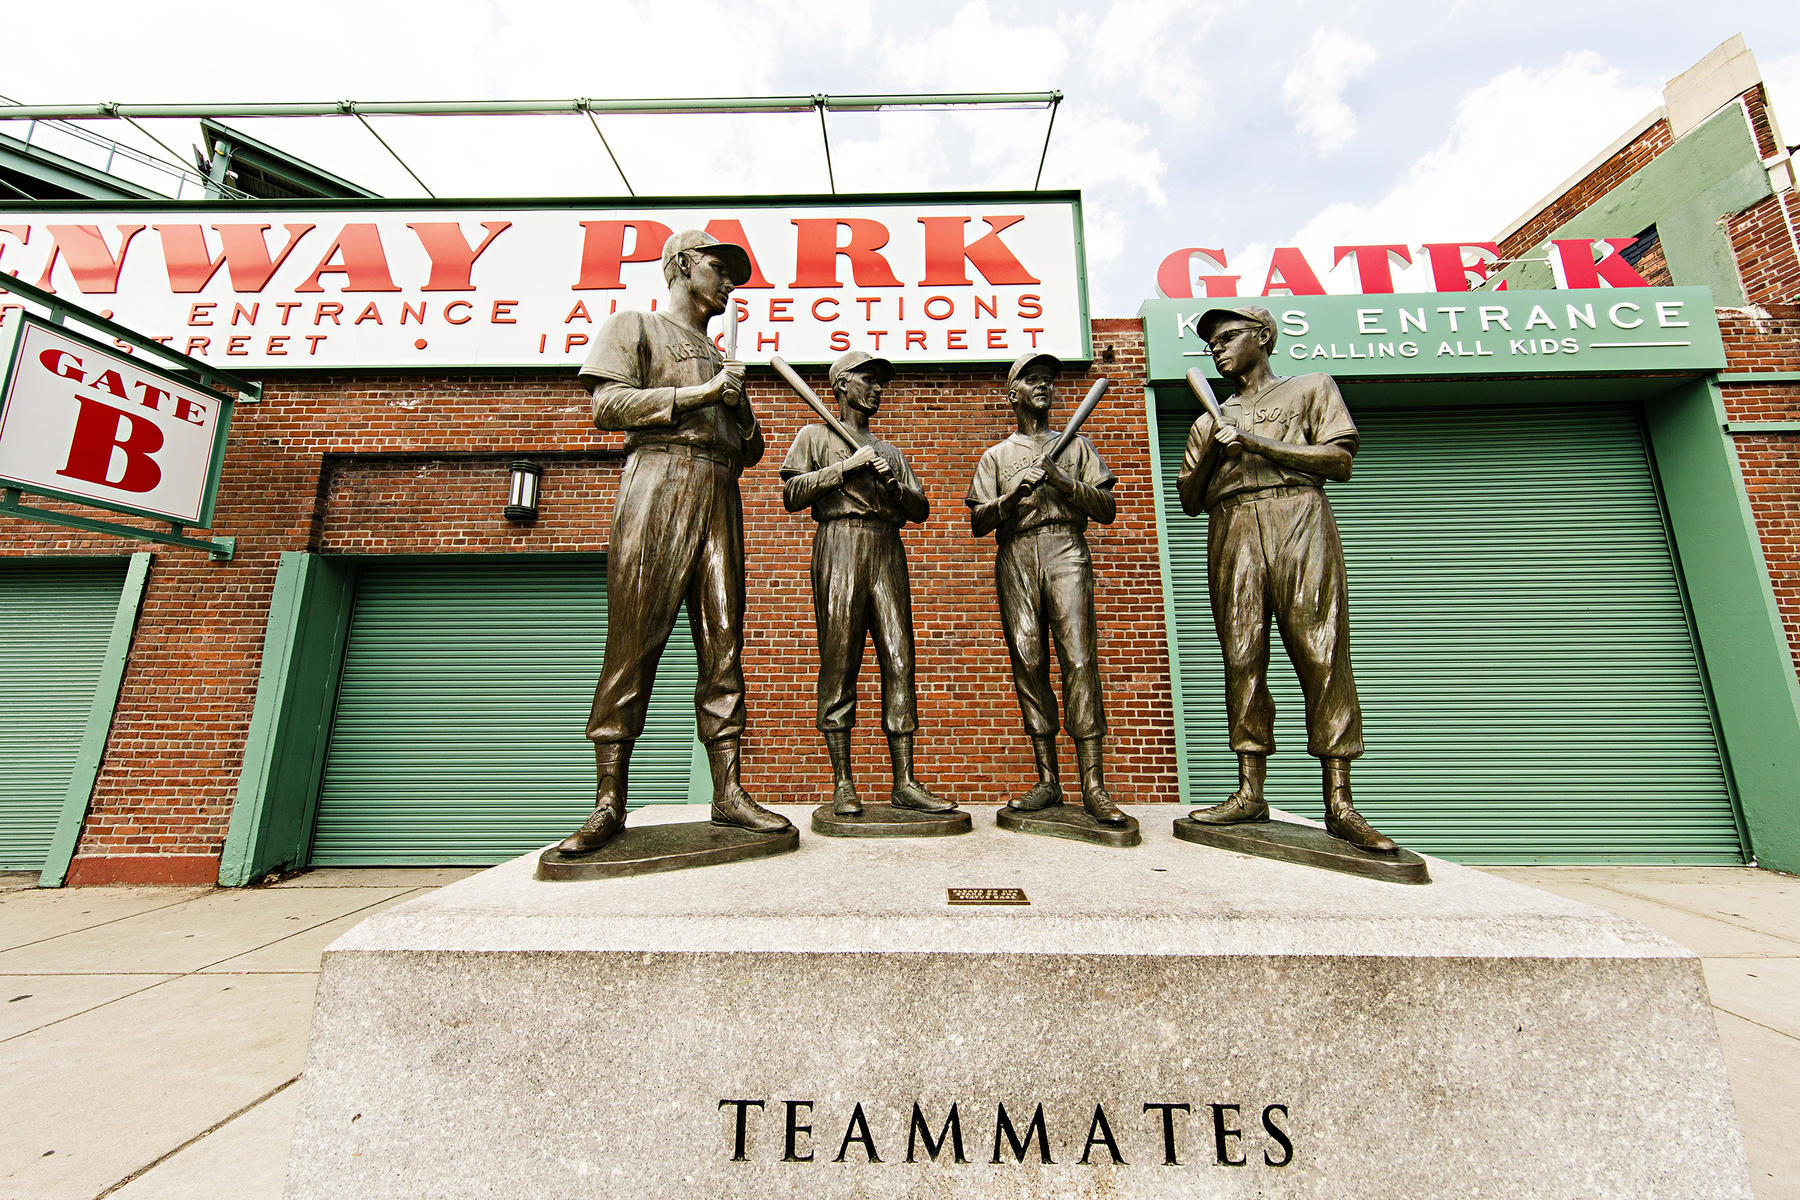 The Red Sox dedicated a statue featuring (from left) Ted Williams, Bobby Doerr, Johnny Pesky and Dom DiMaggio at Fenway Park in 2010. (By Traveling Photographer Jean Fruth/National Baseball Hall of Fame and Museum)